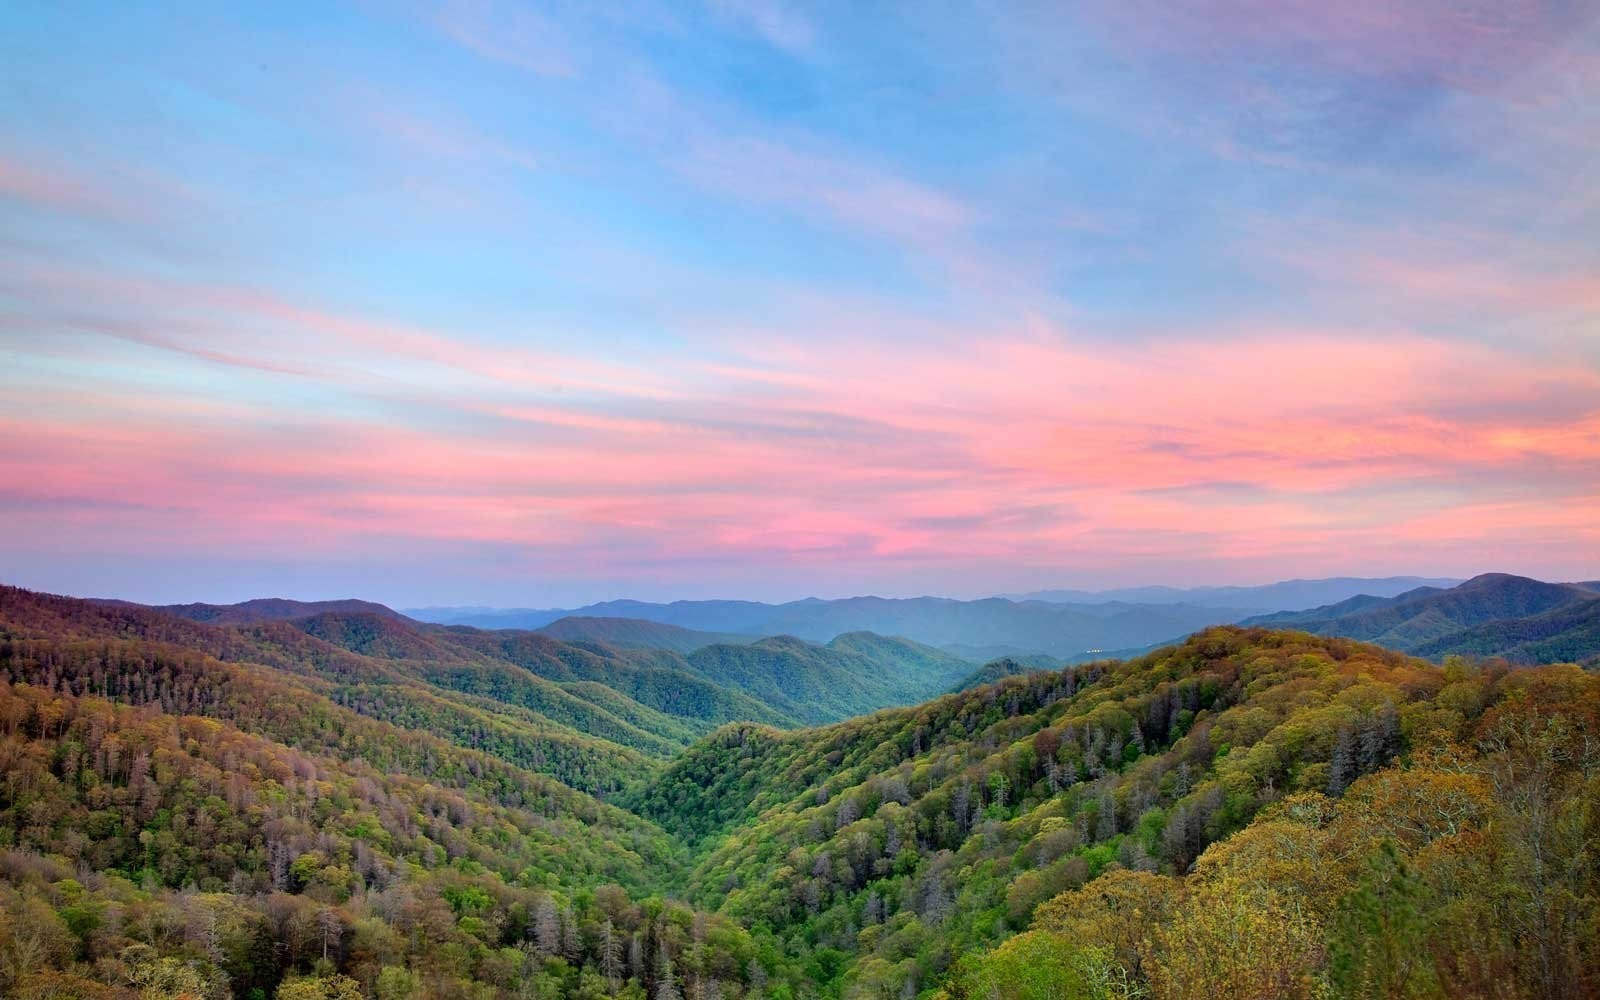 Taking a Train Through the Great Smoky Mountains Needs to Be on Your Bucket List